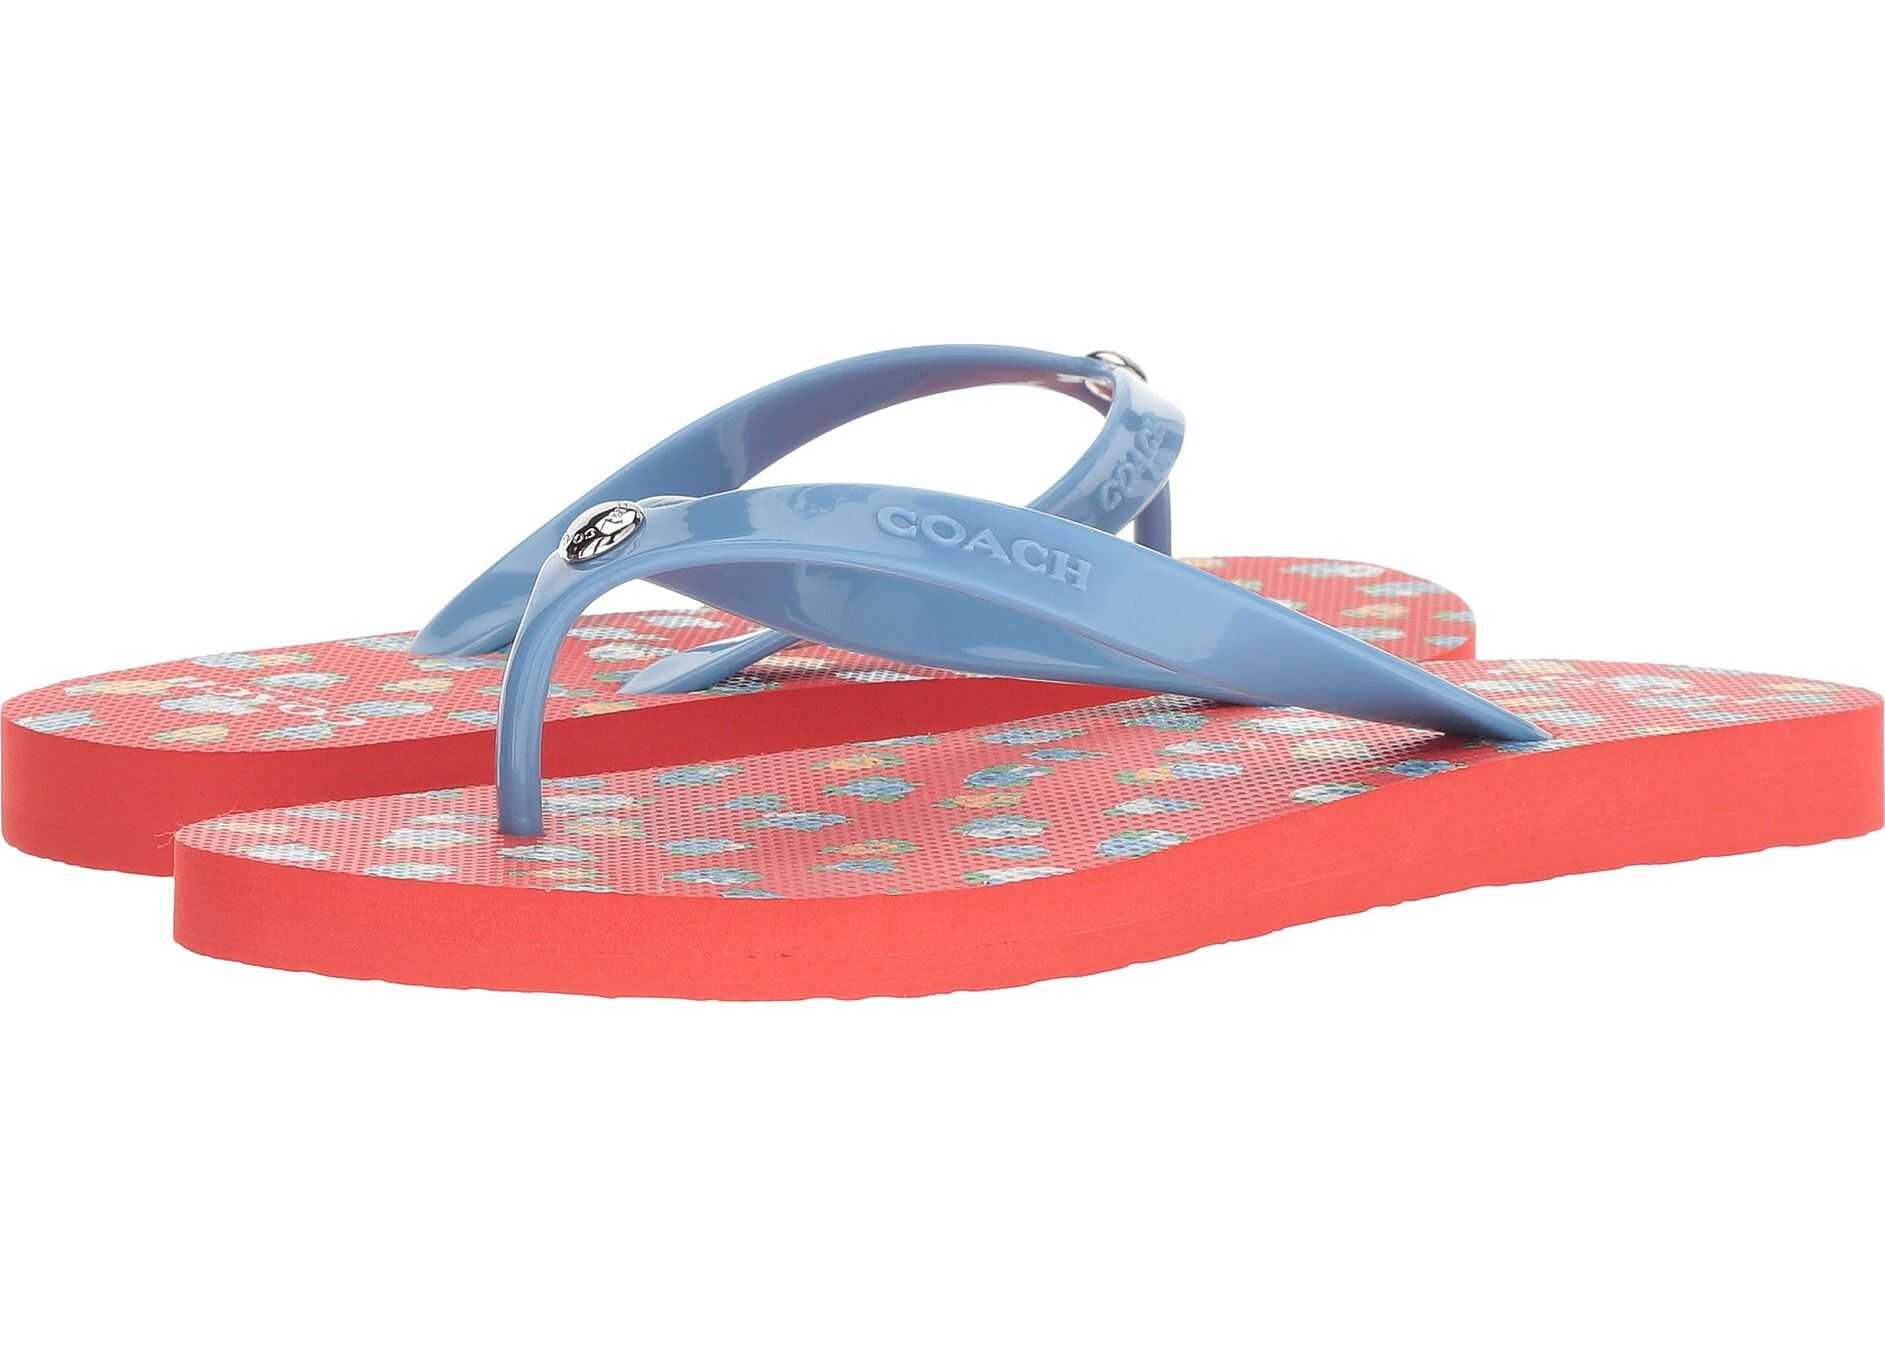 COACH Flip-Flop Red Multi Floral Rubber